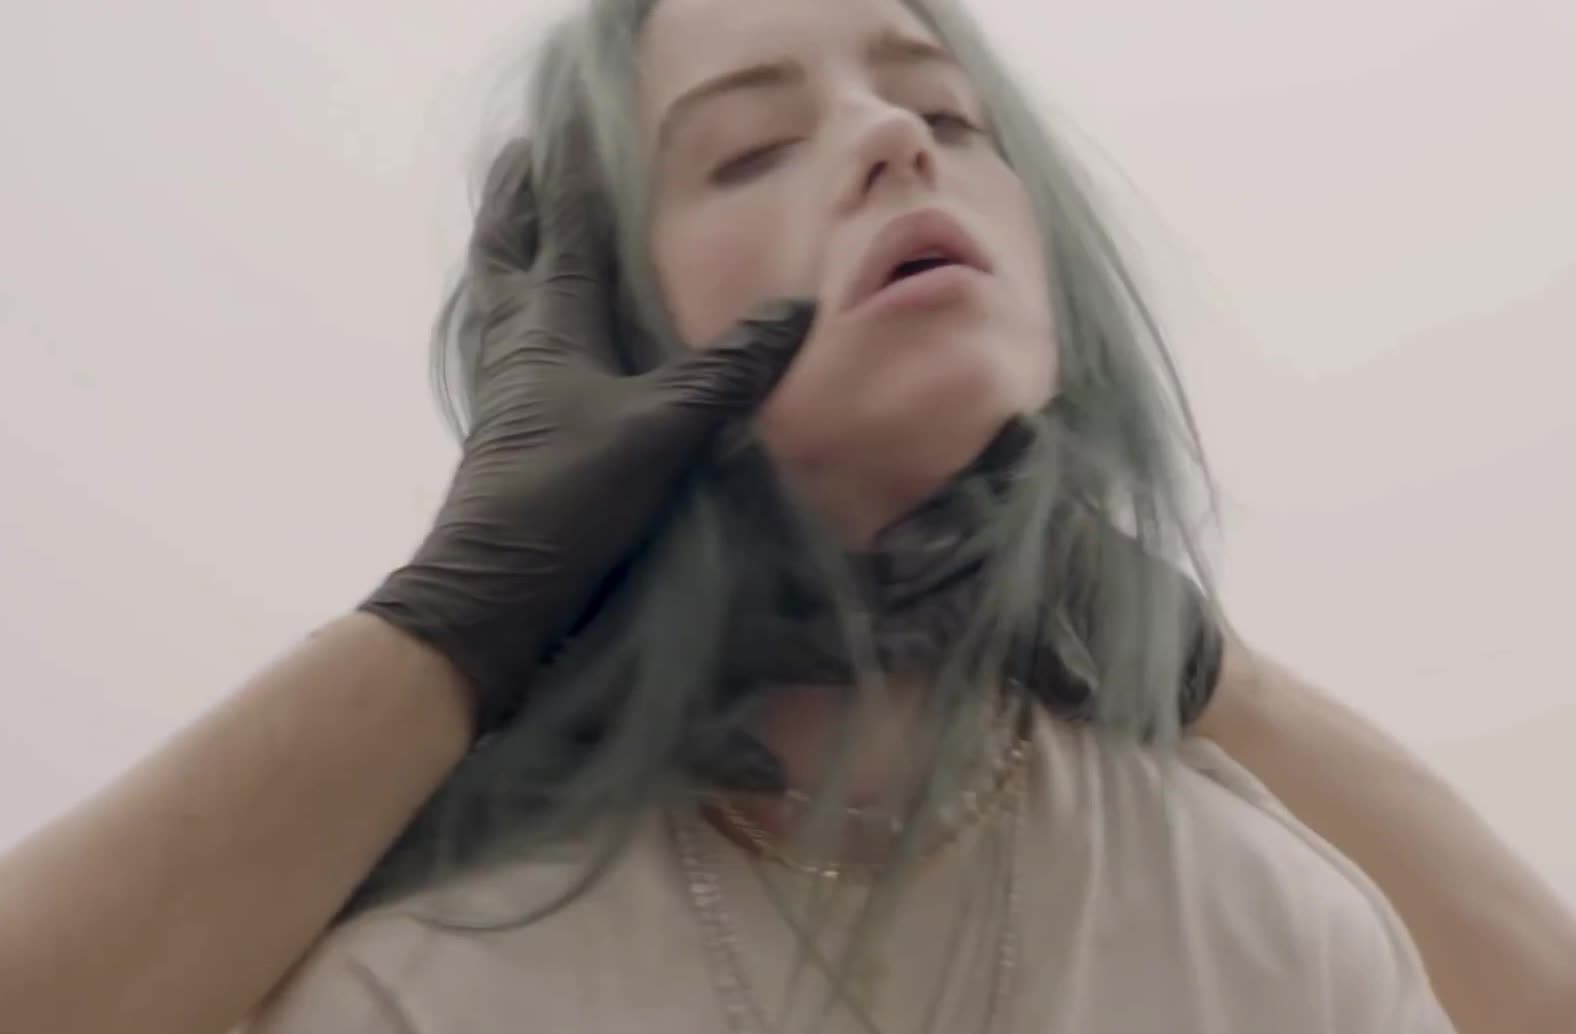 abused, all, are, billie, dizzy, eilish, face, fall, going, hahahahaha, hands, mess, new, scary, song, teaser, we, when, where, Billie Eilish GIFs